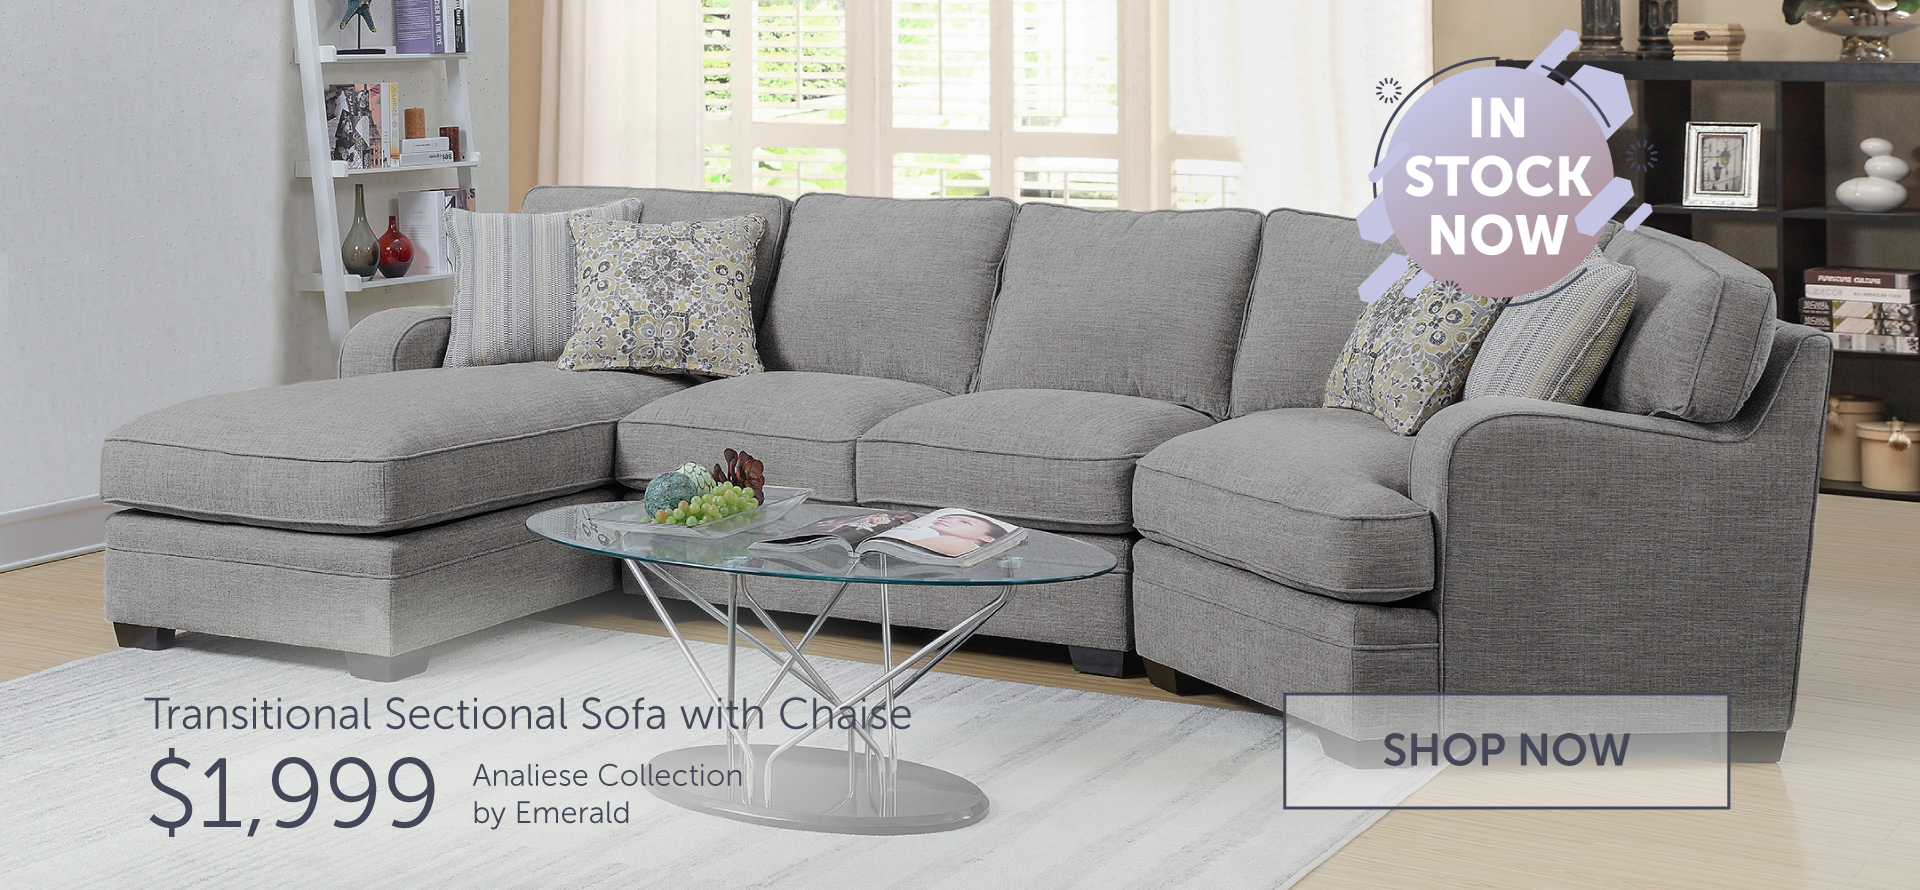 Emerald transitional sectional sofa with chaise